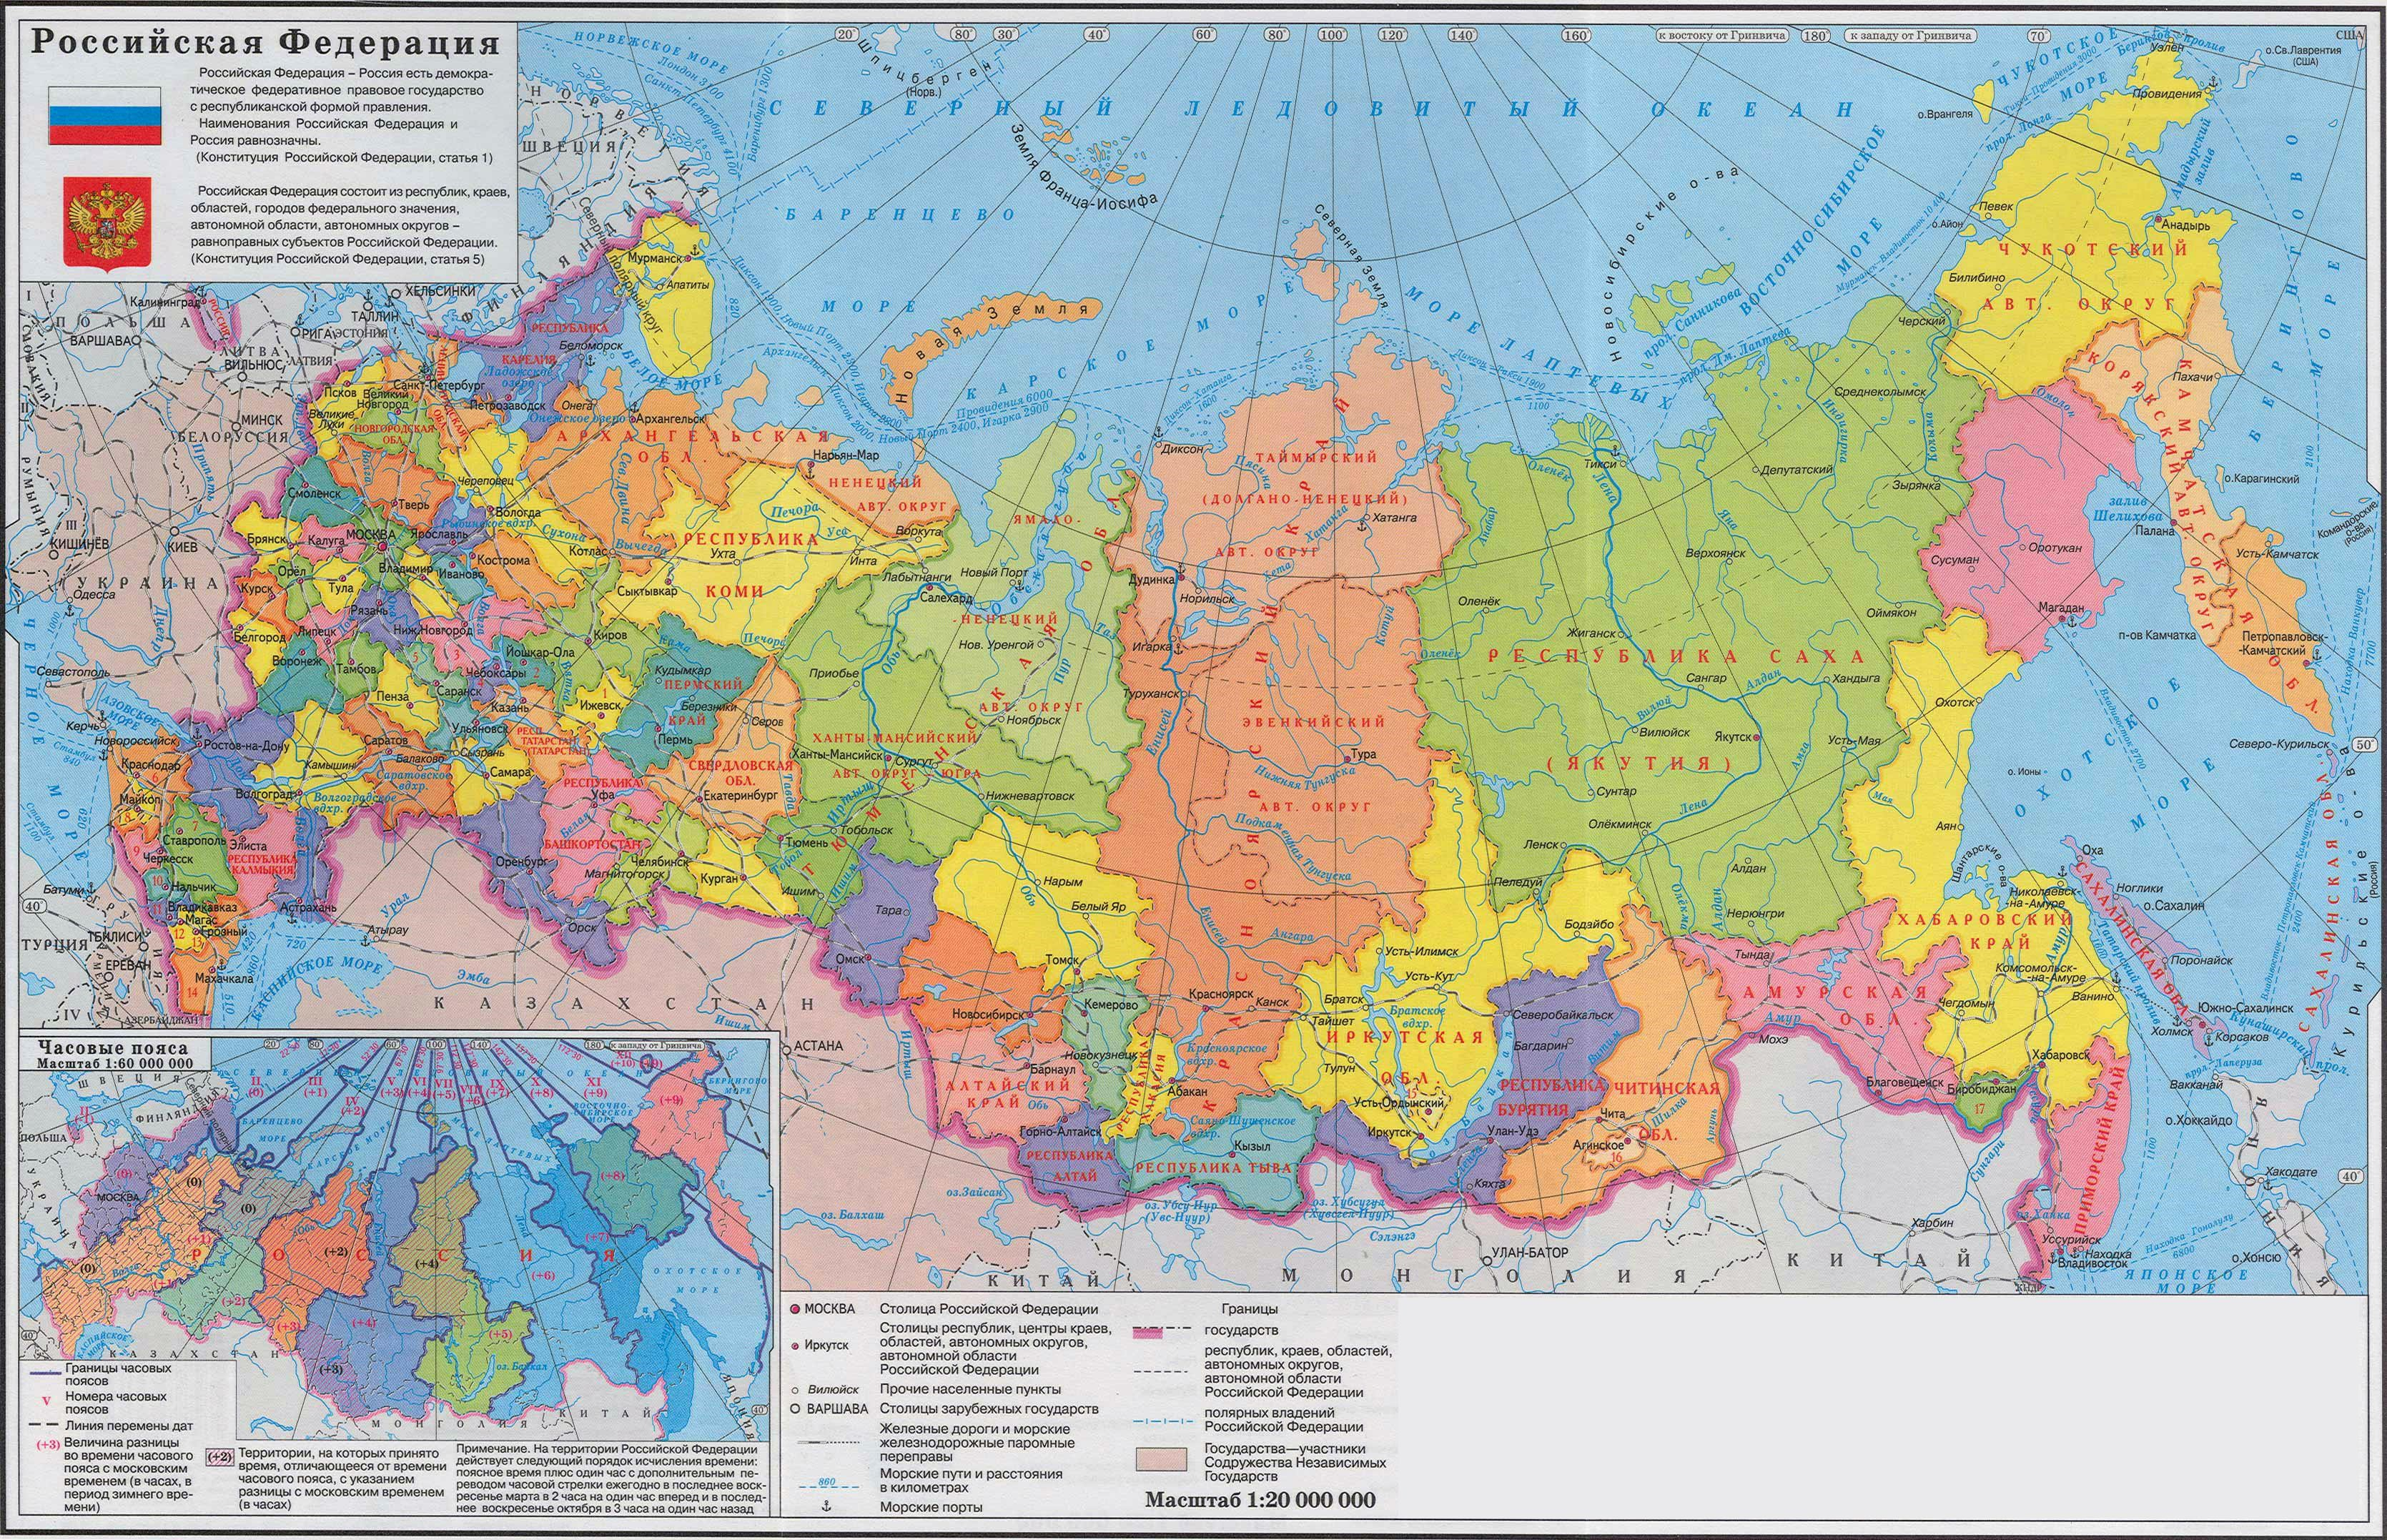 Largepoliticalandadministrativemapofrussiawithcitiesjpg - Map of russia with cities